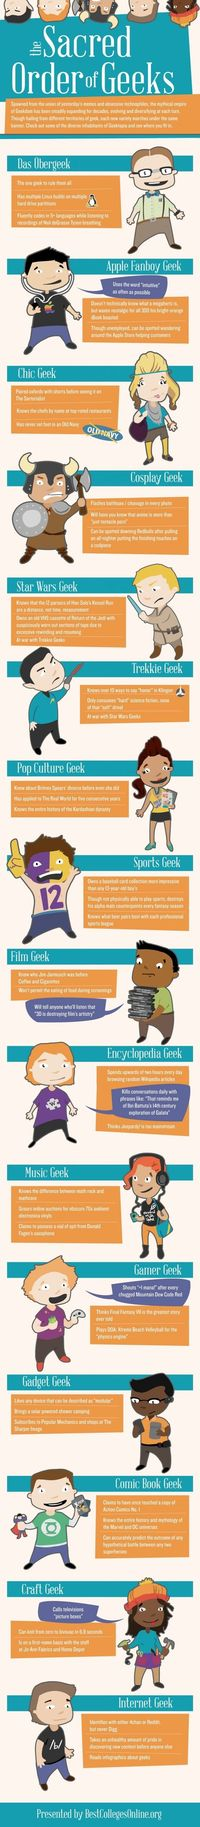 Infographic: The Many Types of Geeks